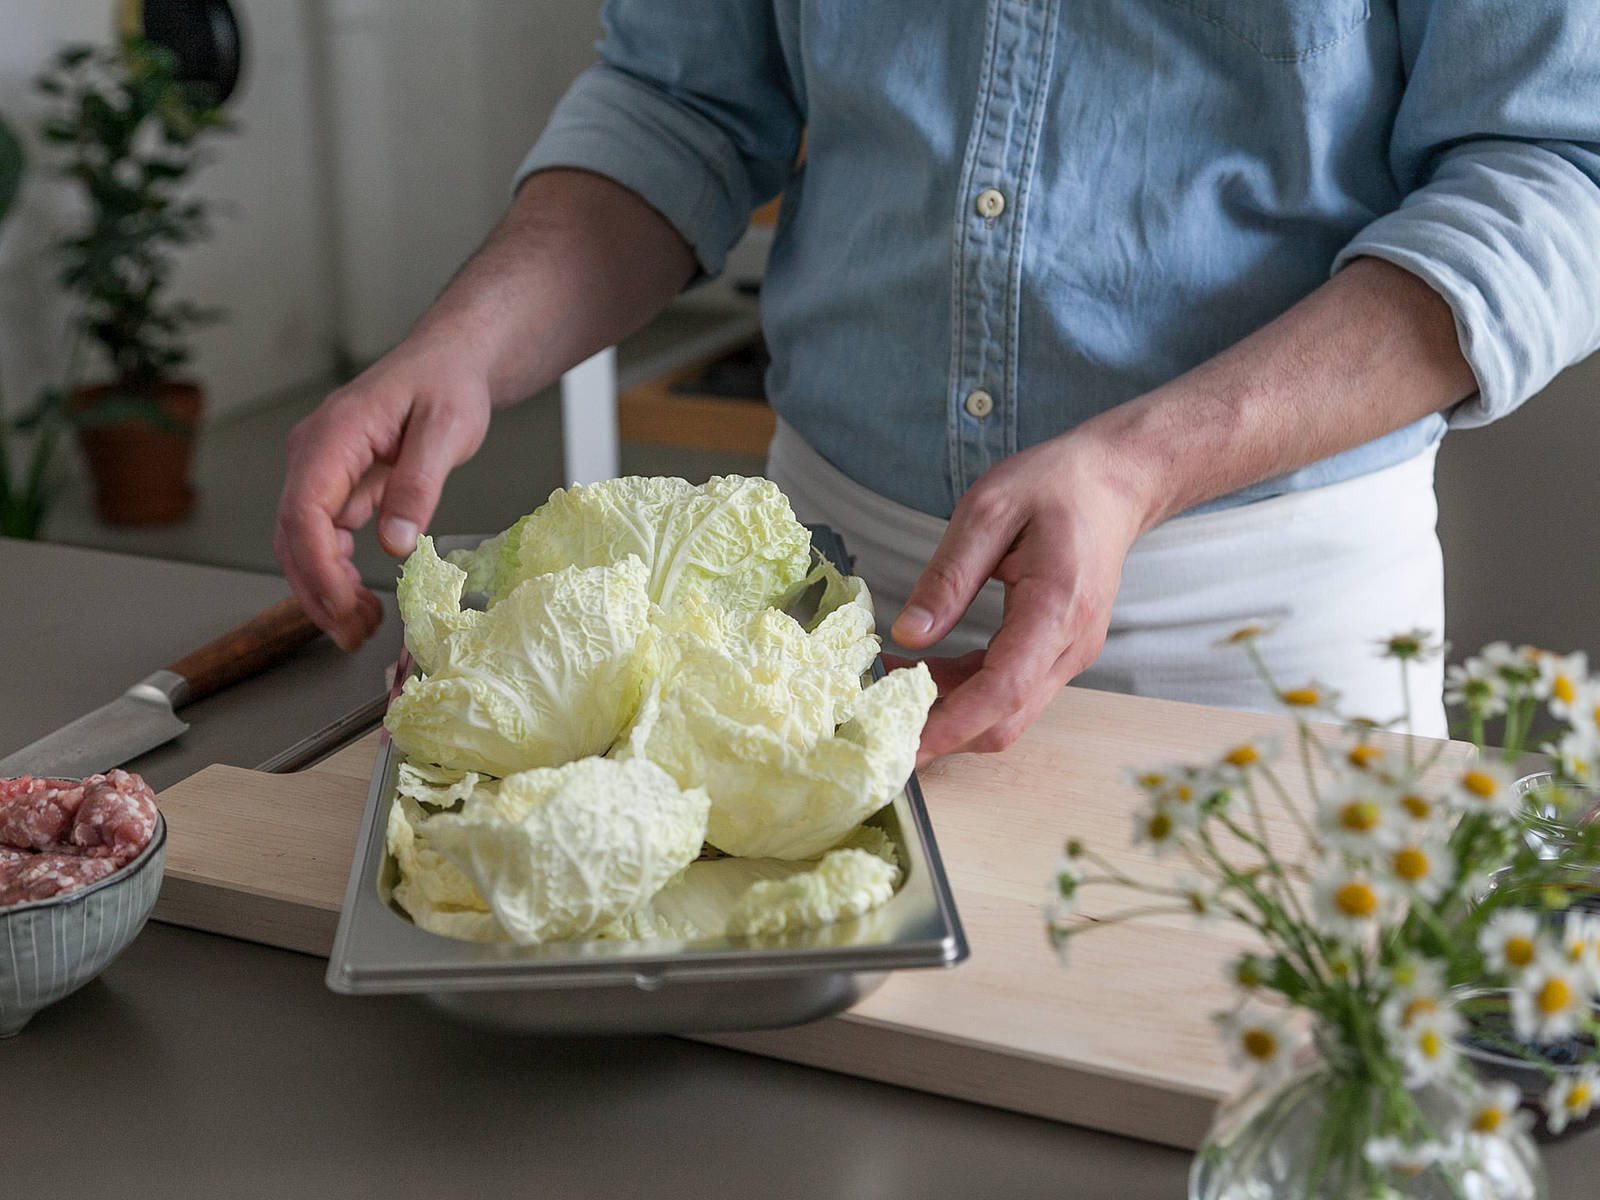 Blanche whole Chinese cabbage leaves in steam oven for approx. 1 min. Transfer to an ice bath-filled bowl directly afterwards.